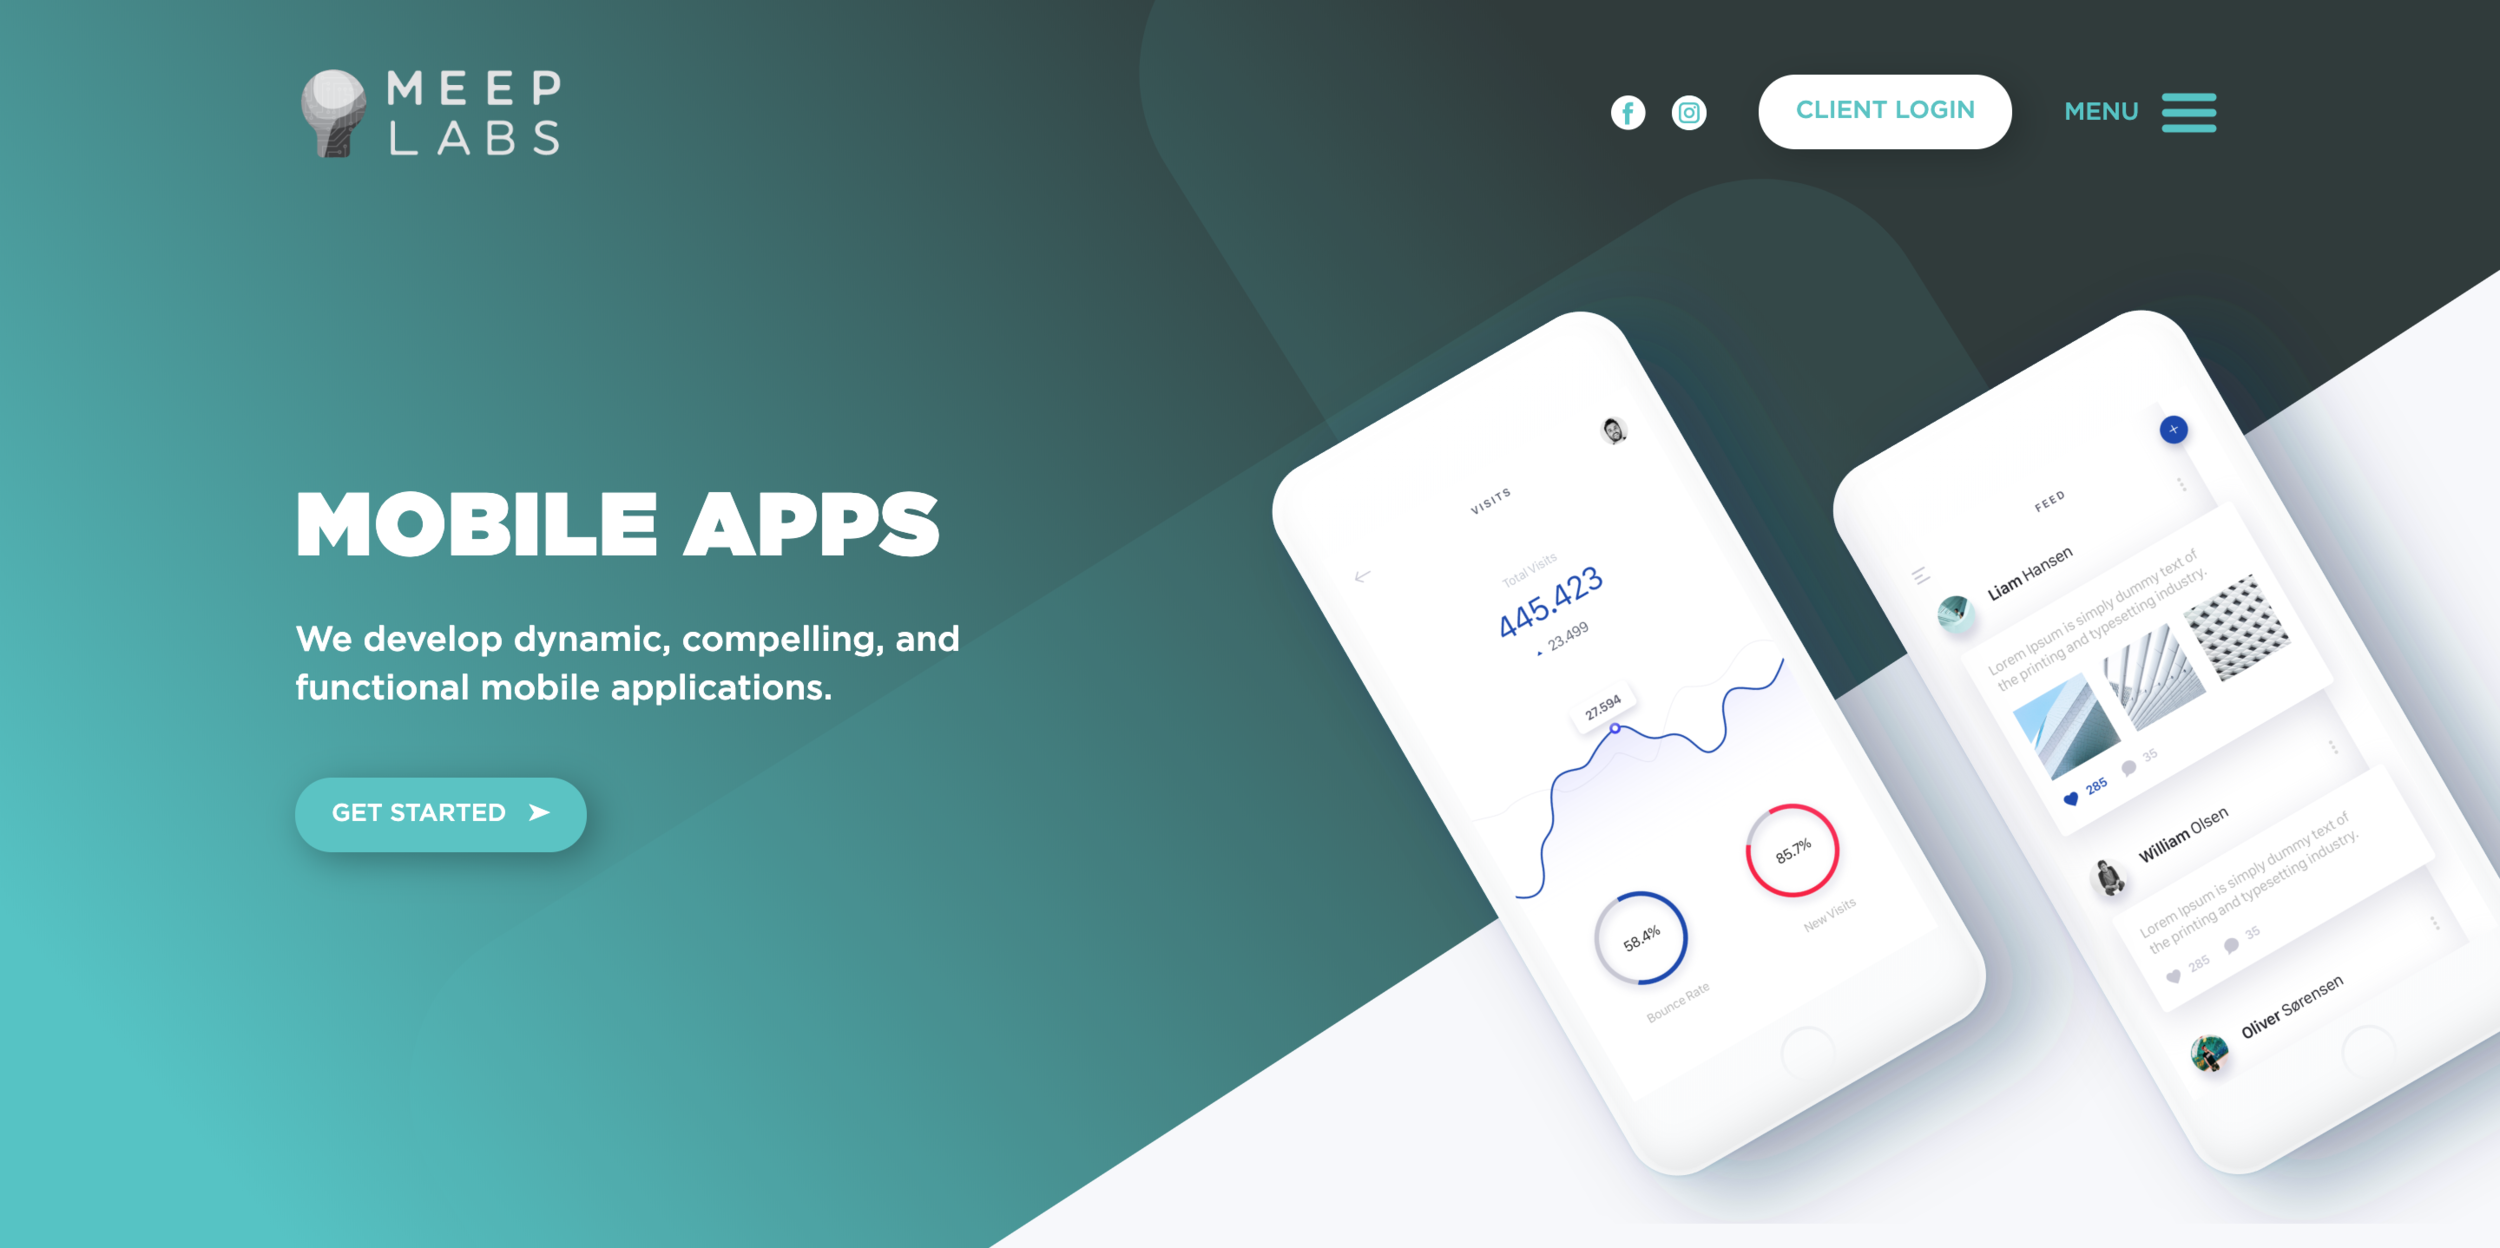 mobile apps page